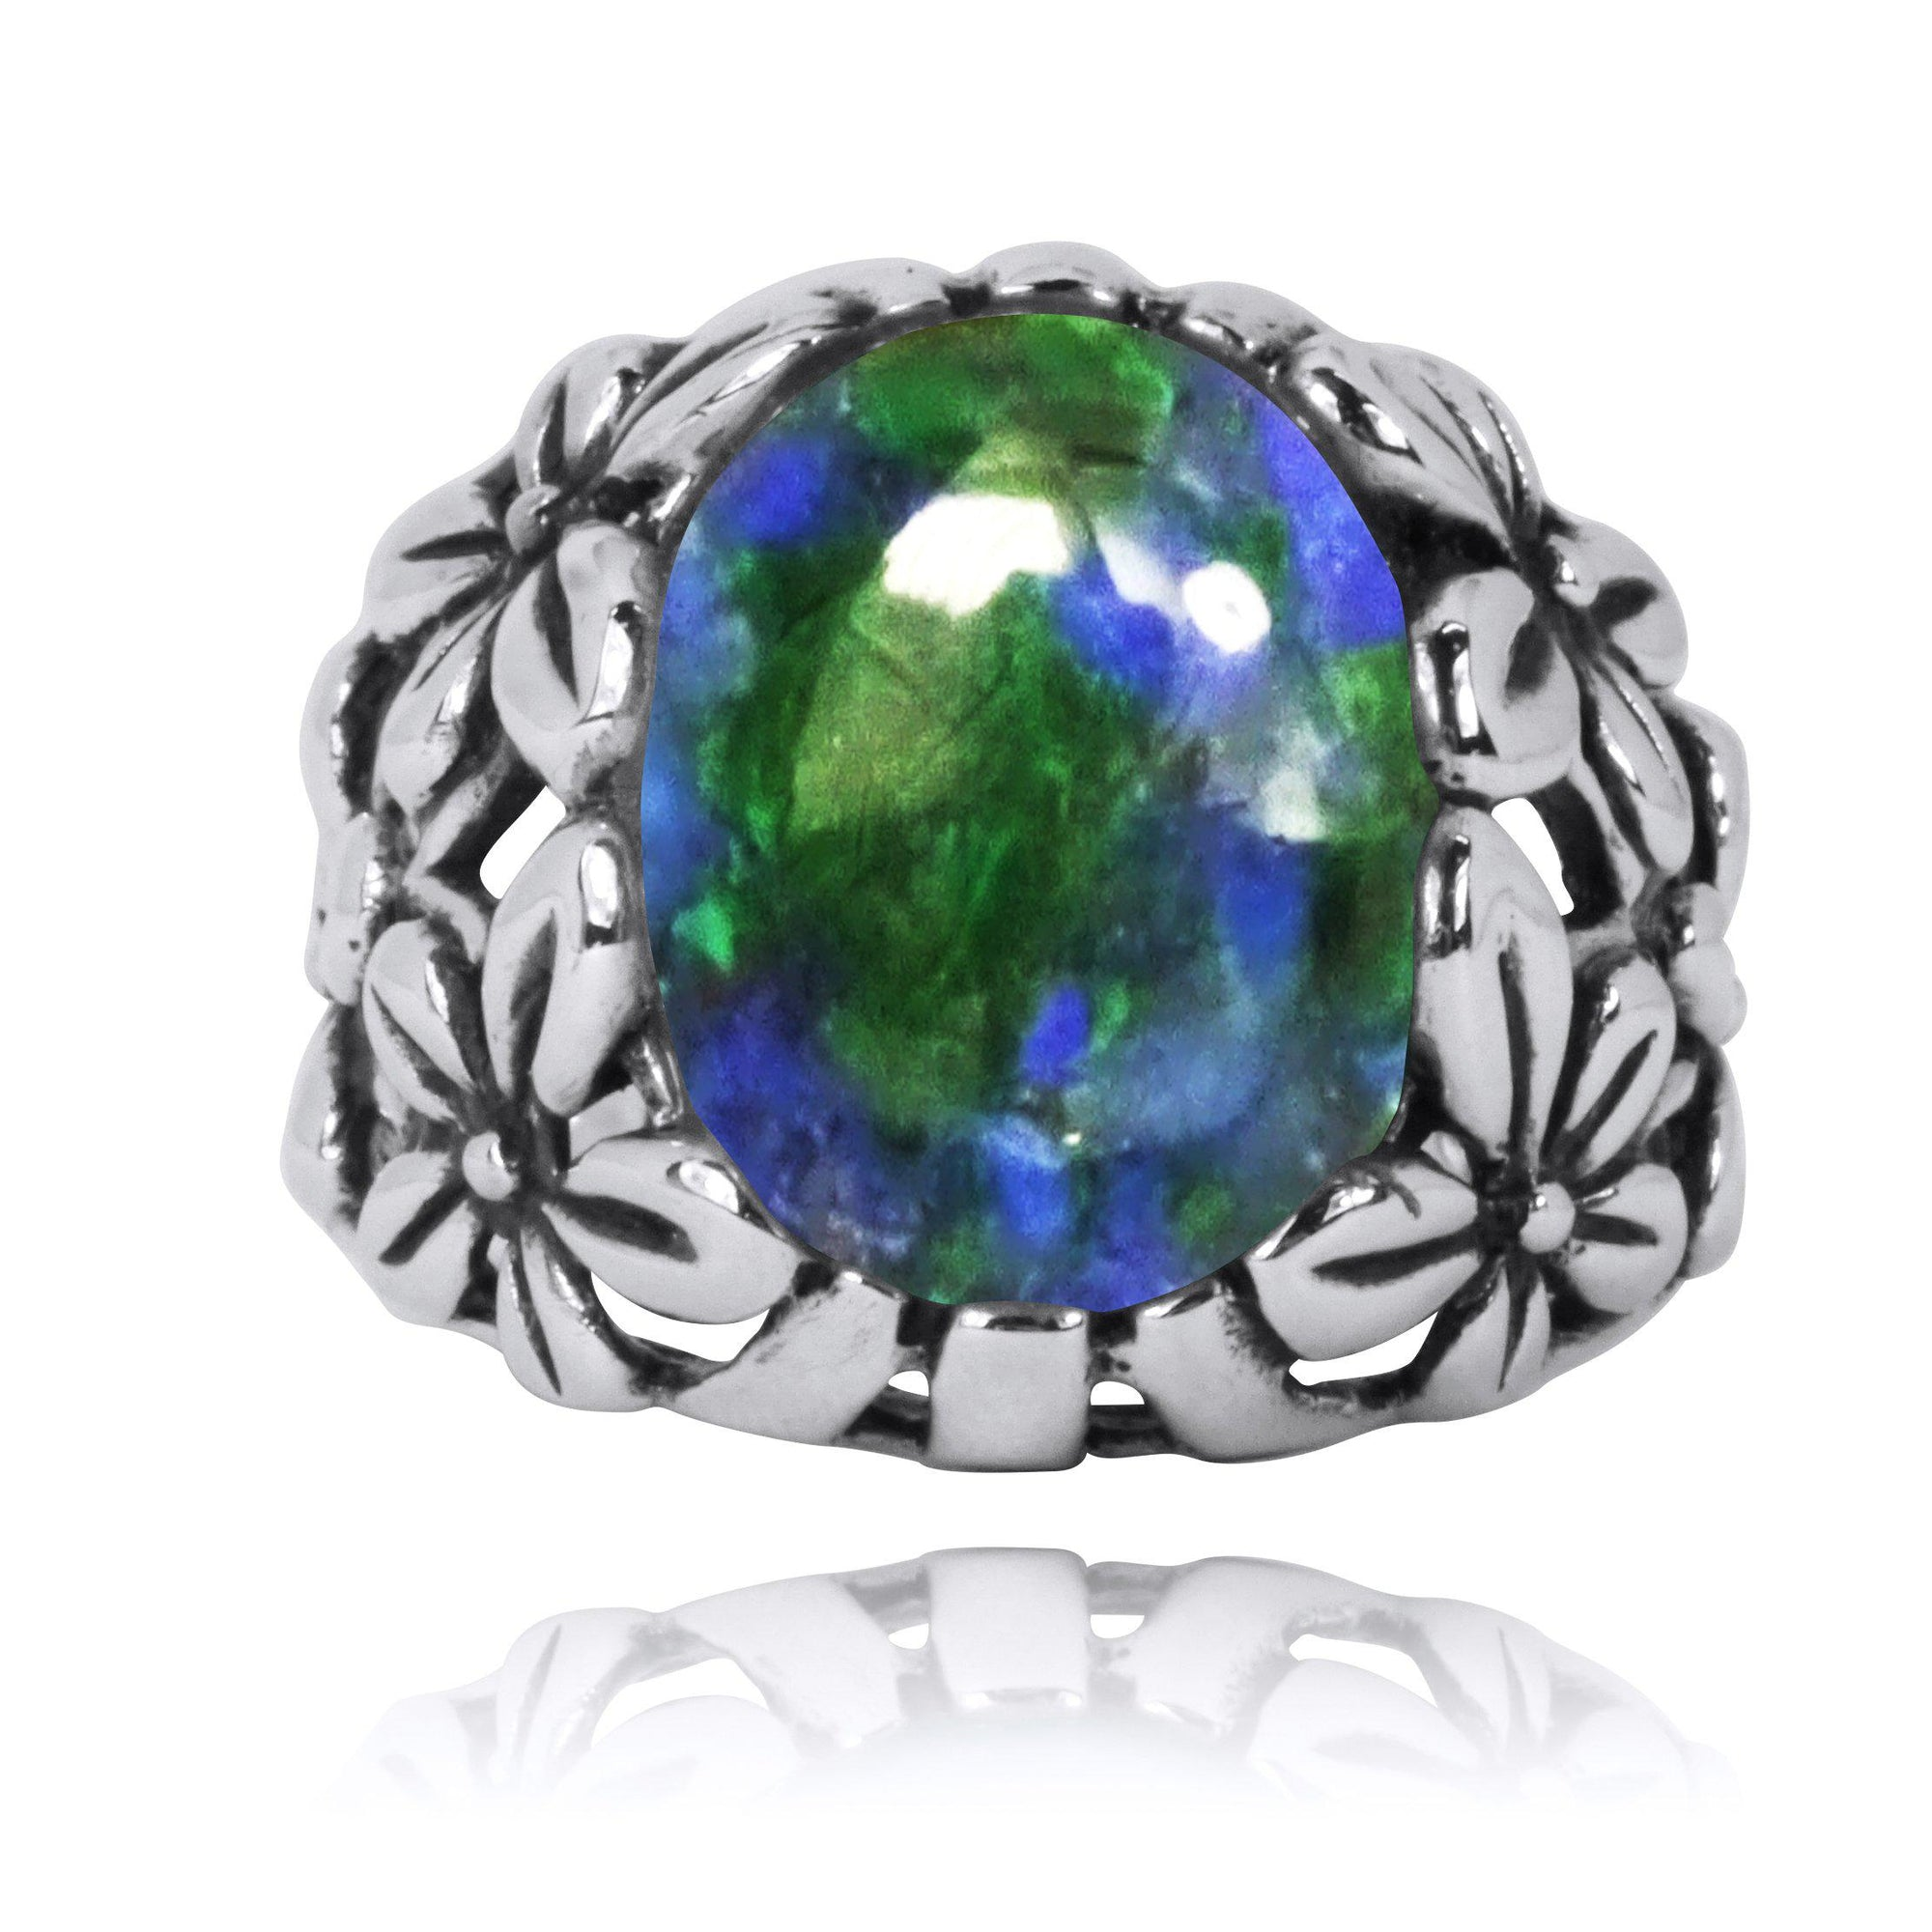 Oxidized Silver Floral Ring with Azurite Malachite